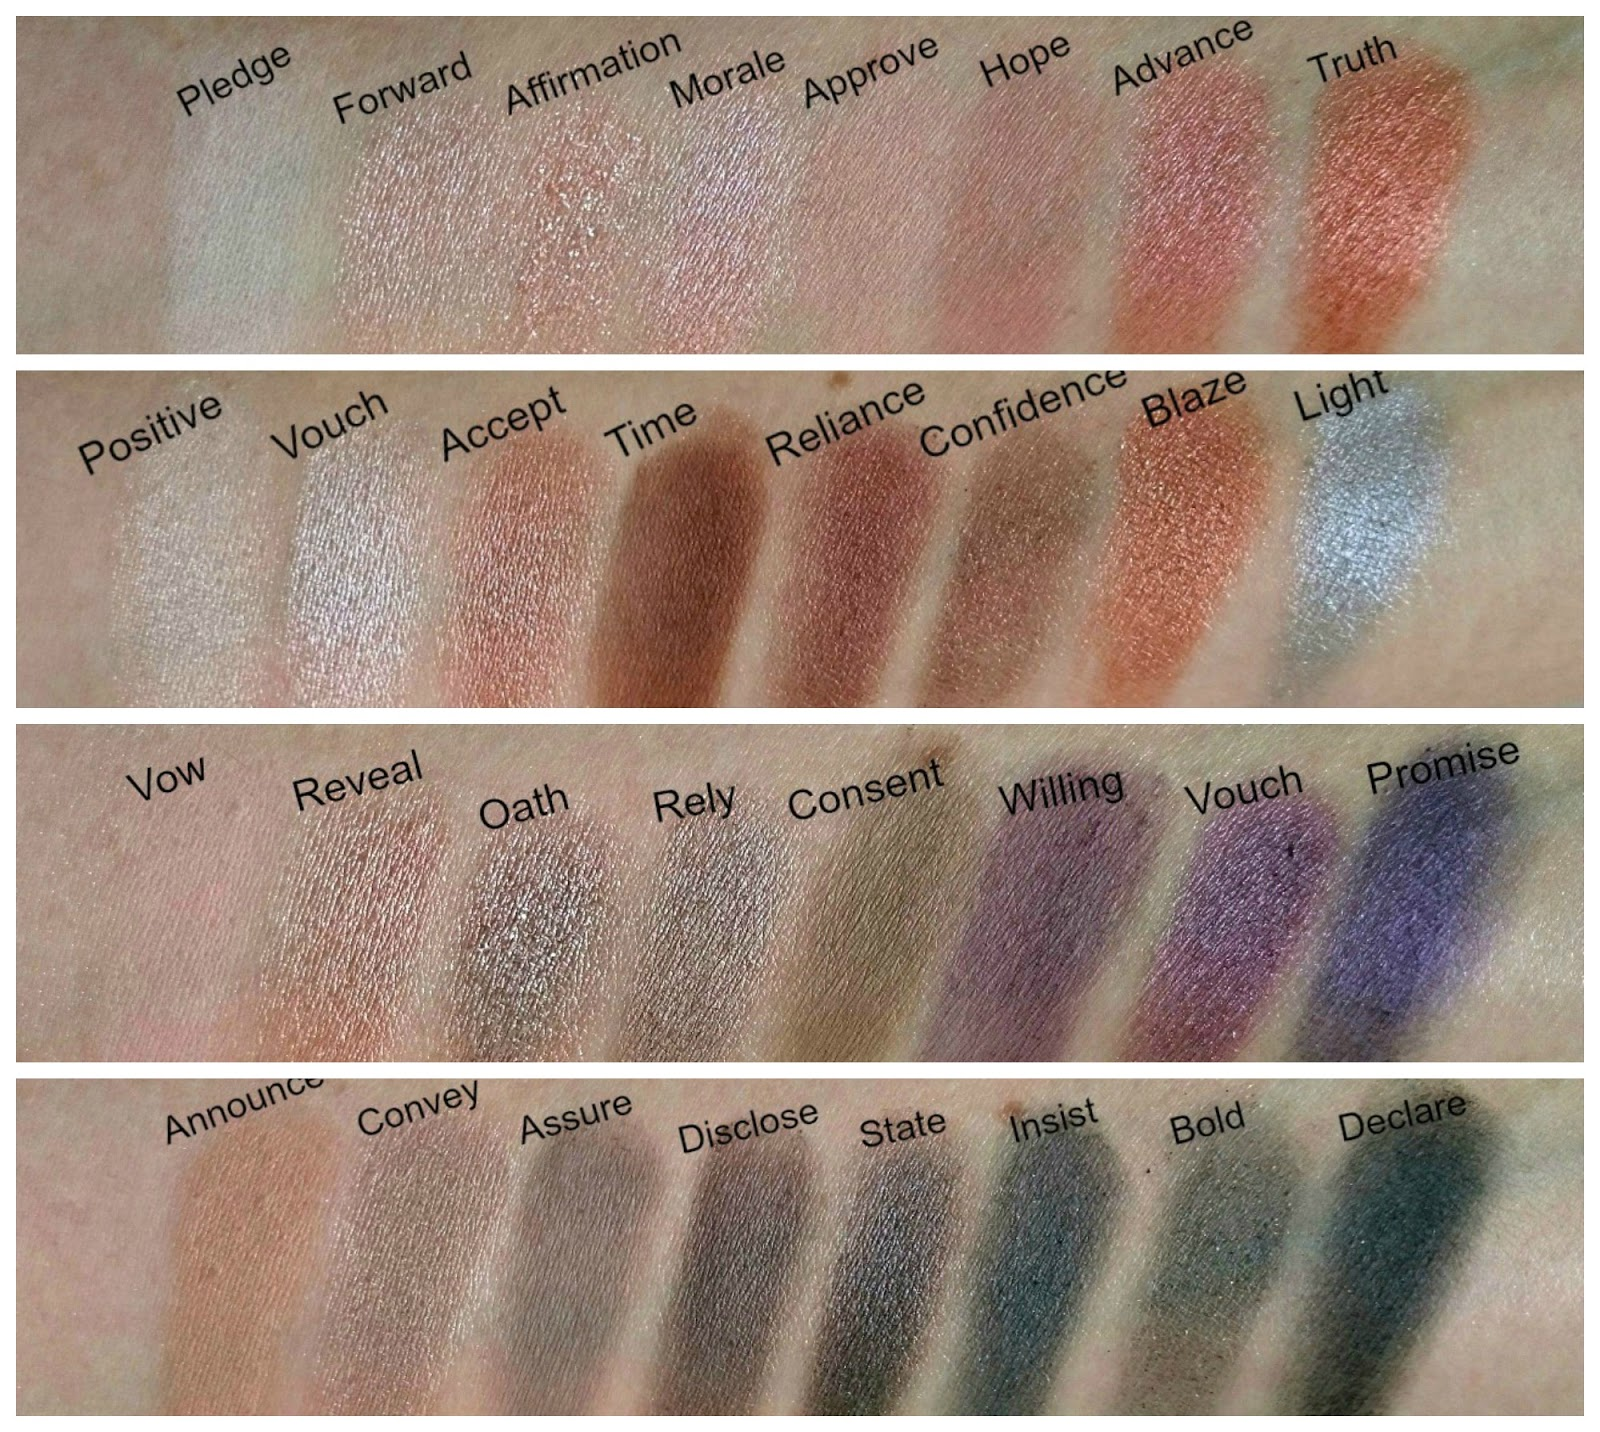 Makeup Revolution Affirmation palette swatches